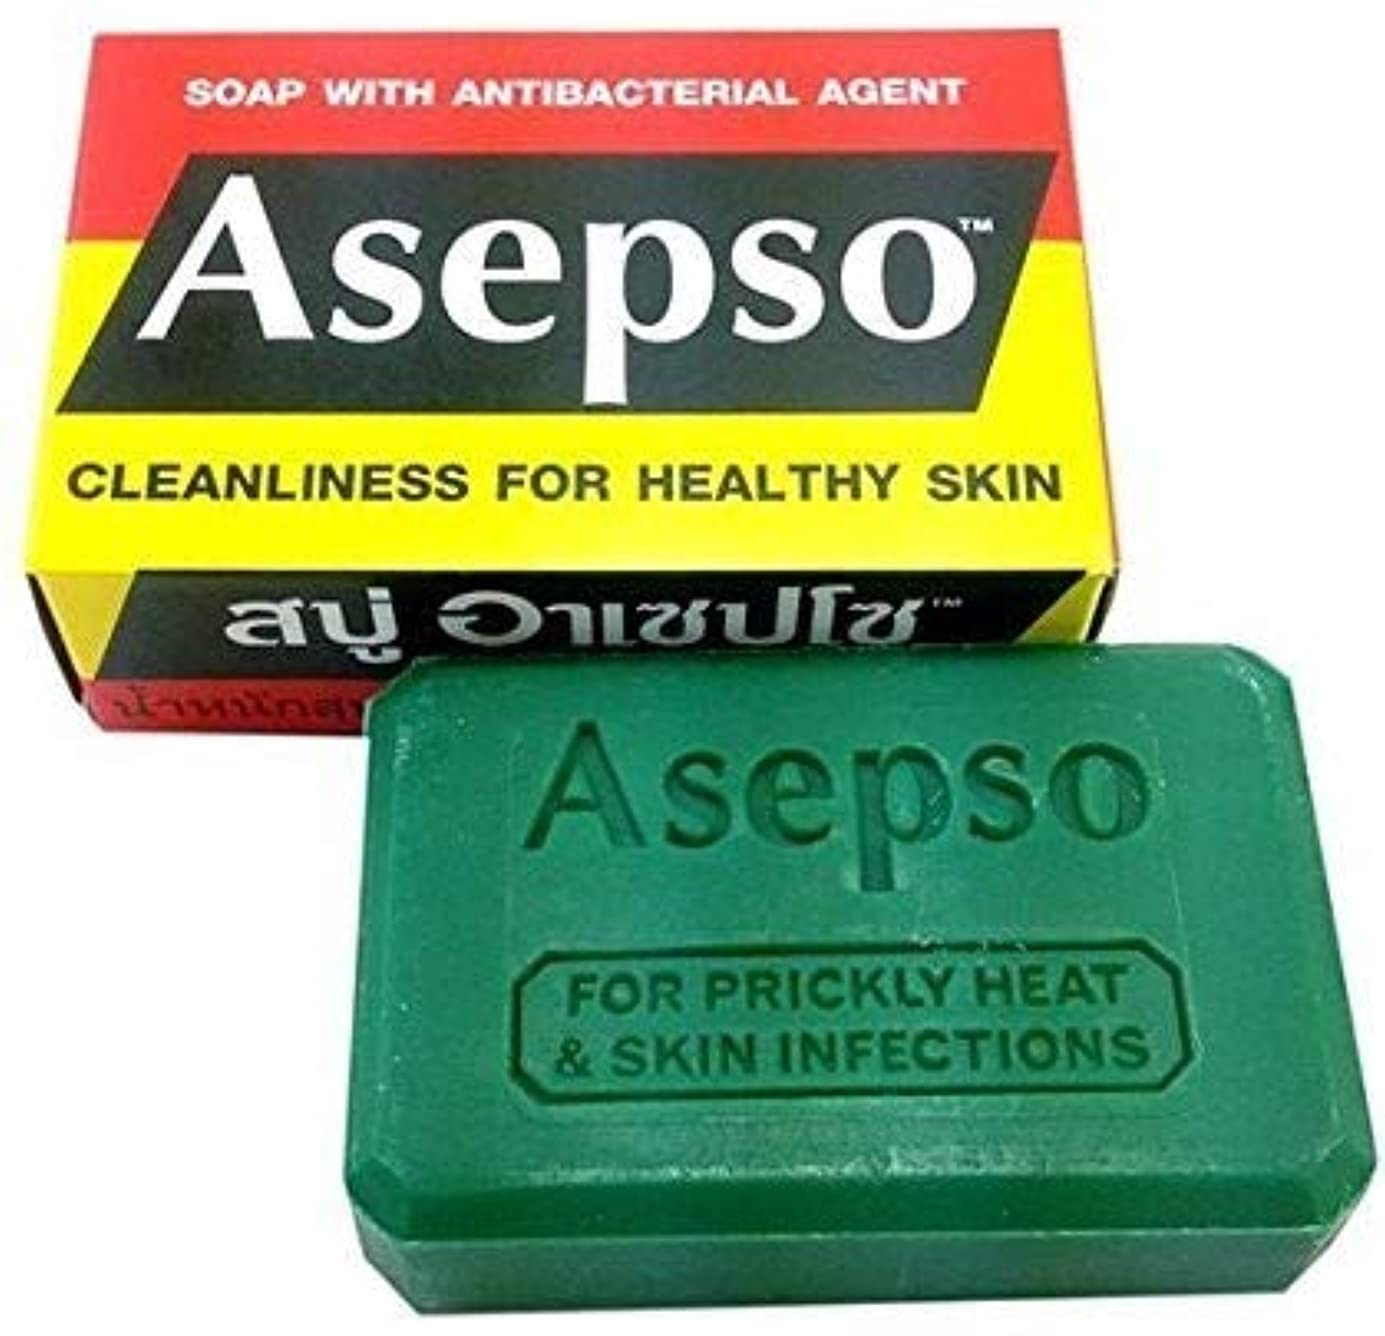 窓を洗う劇的柱Ni Yom Thai shop Asepso Soap with Antibacterial Agent 80 Grams